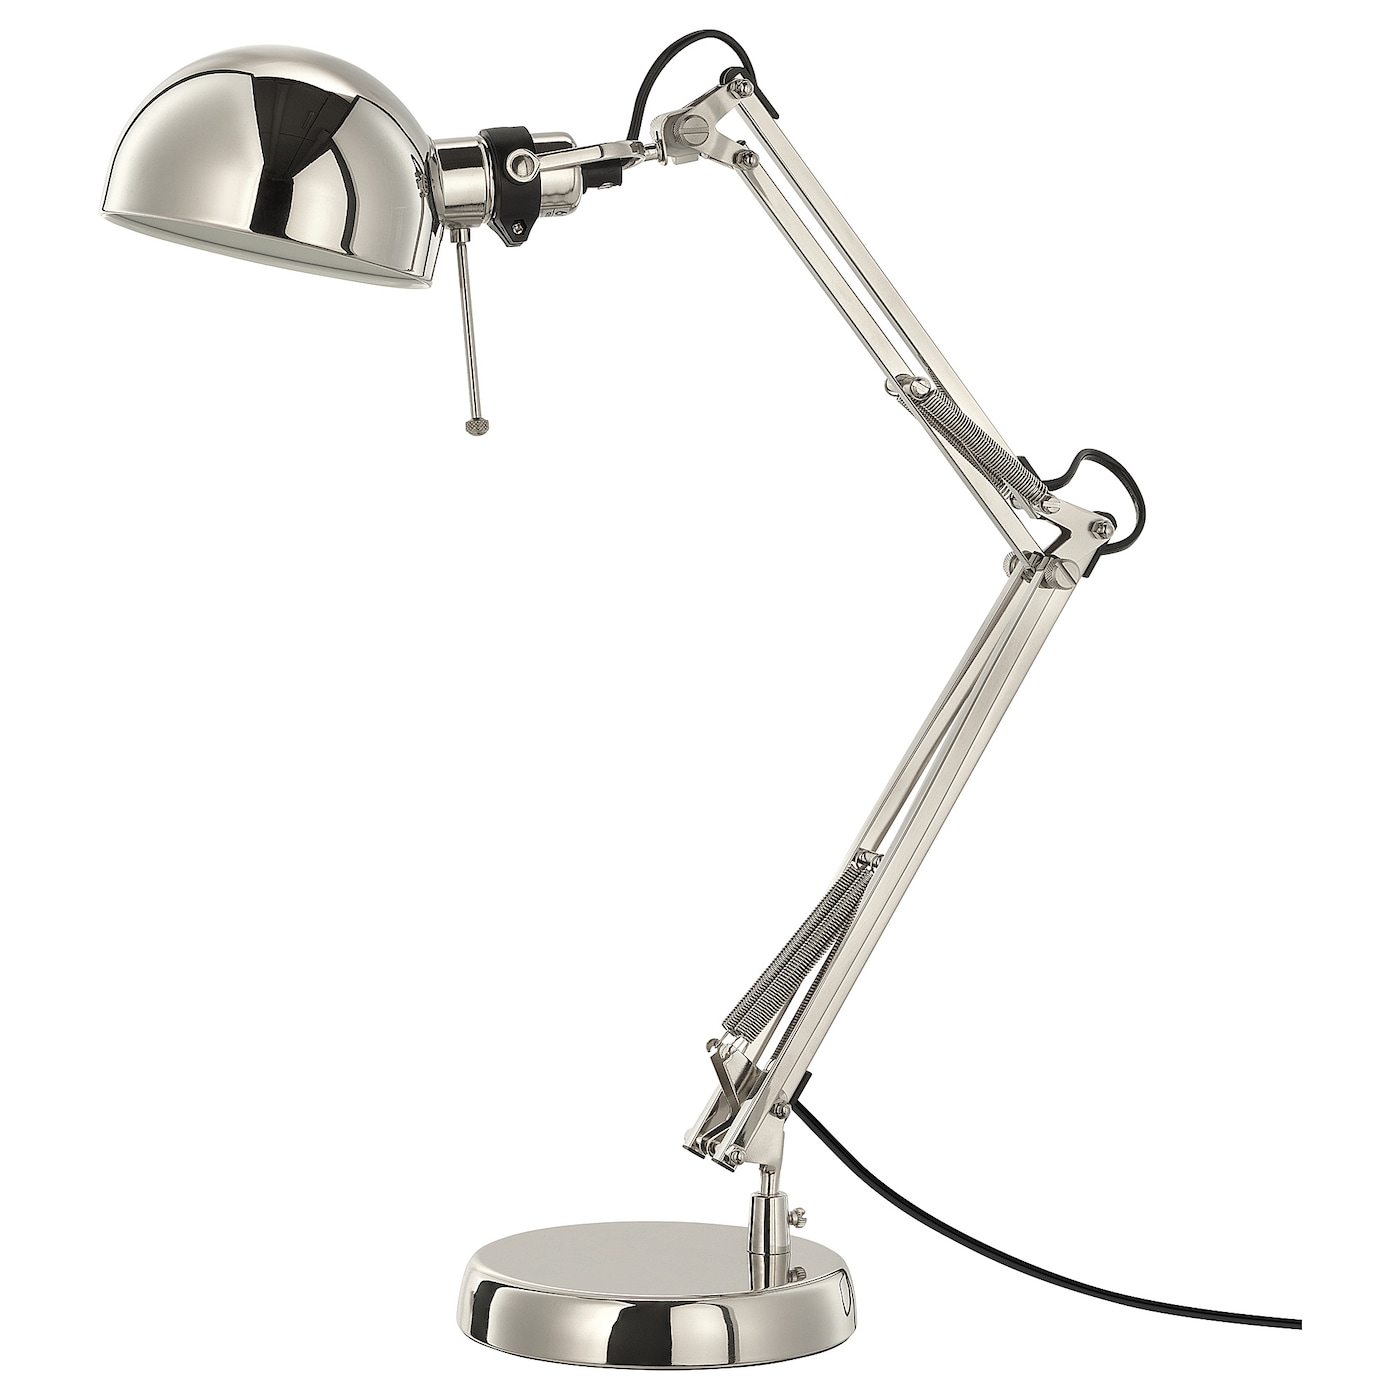 ikea lighting catalogue light fixtures ikea fors work lamp provides directed light that is great for reading lighting lamps led